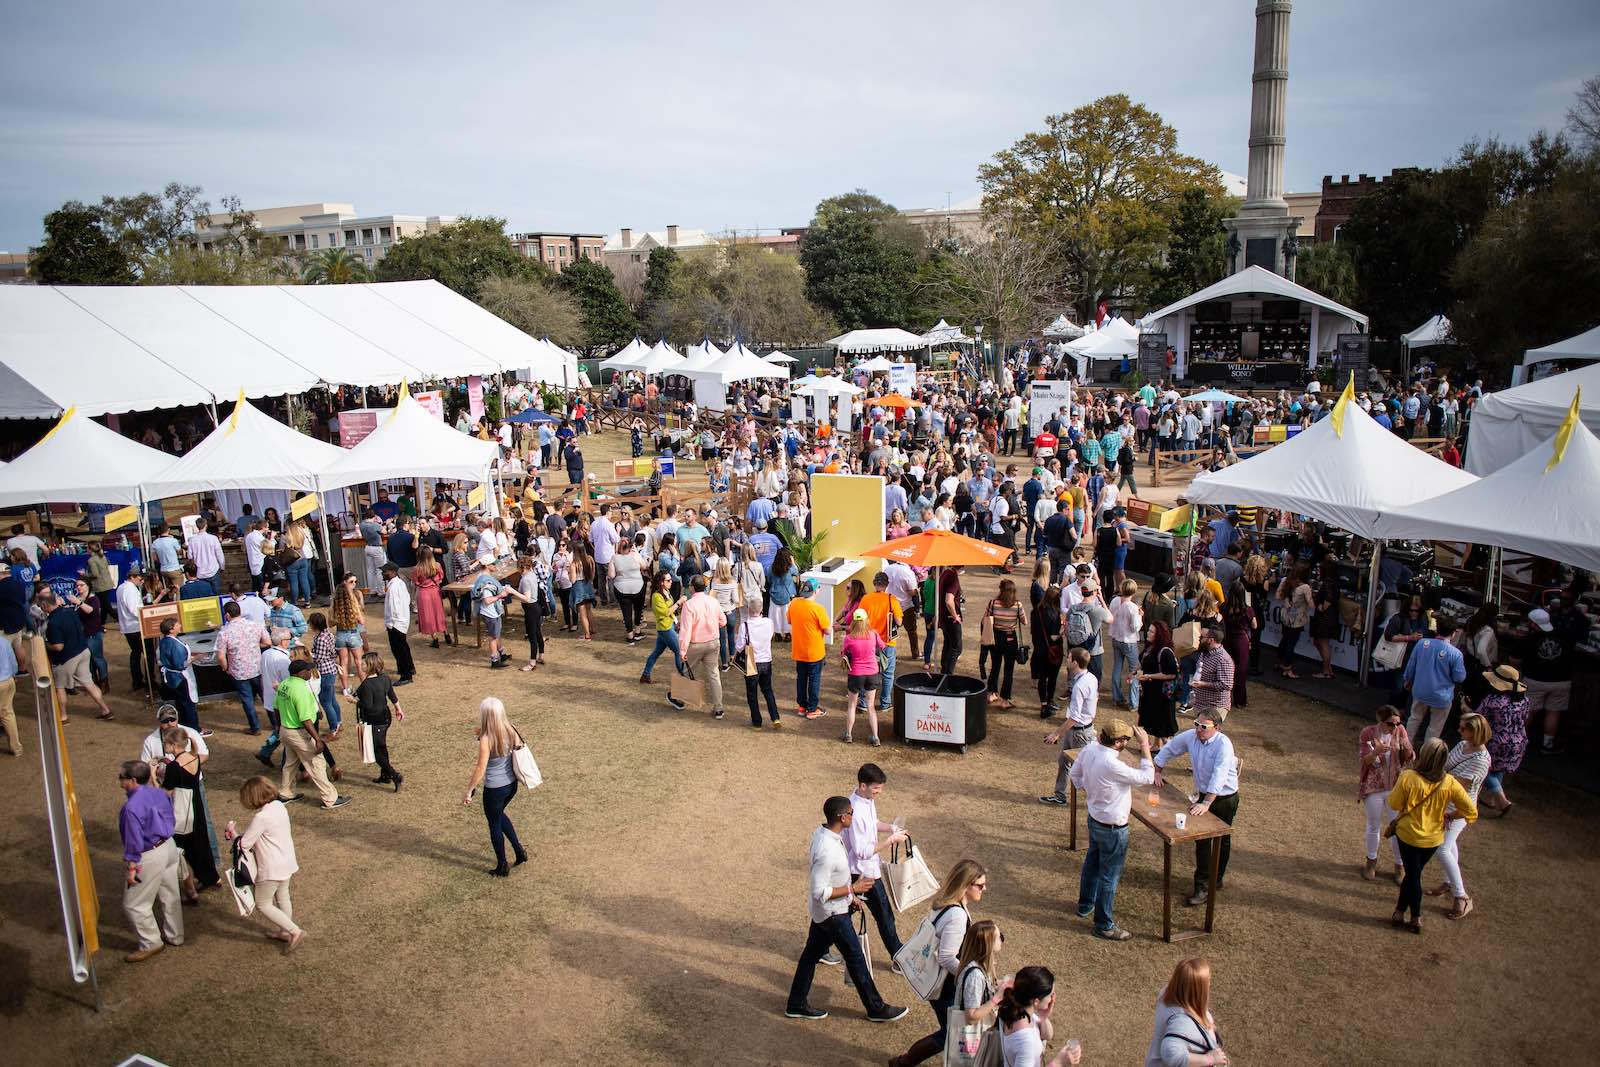 The Culinary Village will be returning for the 2022 Charleston Wine + Food Festival but not to its former home in Marion Square